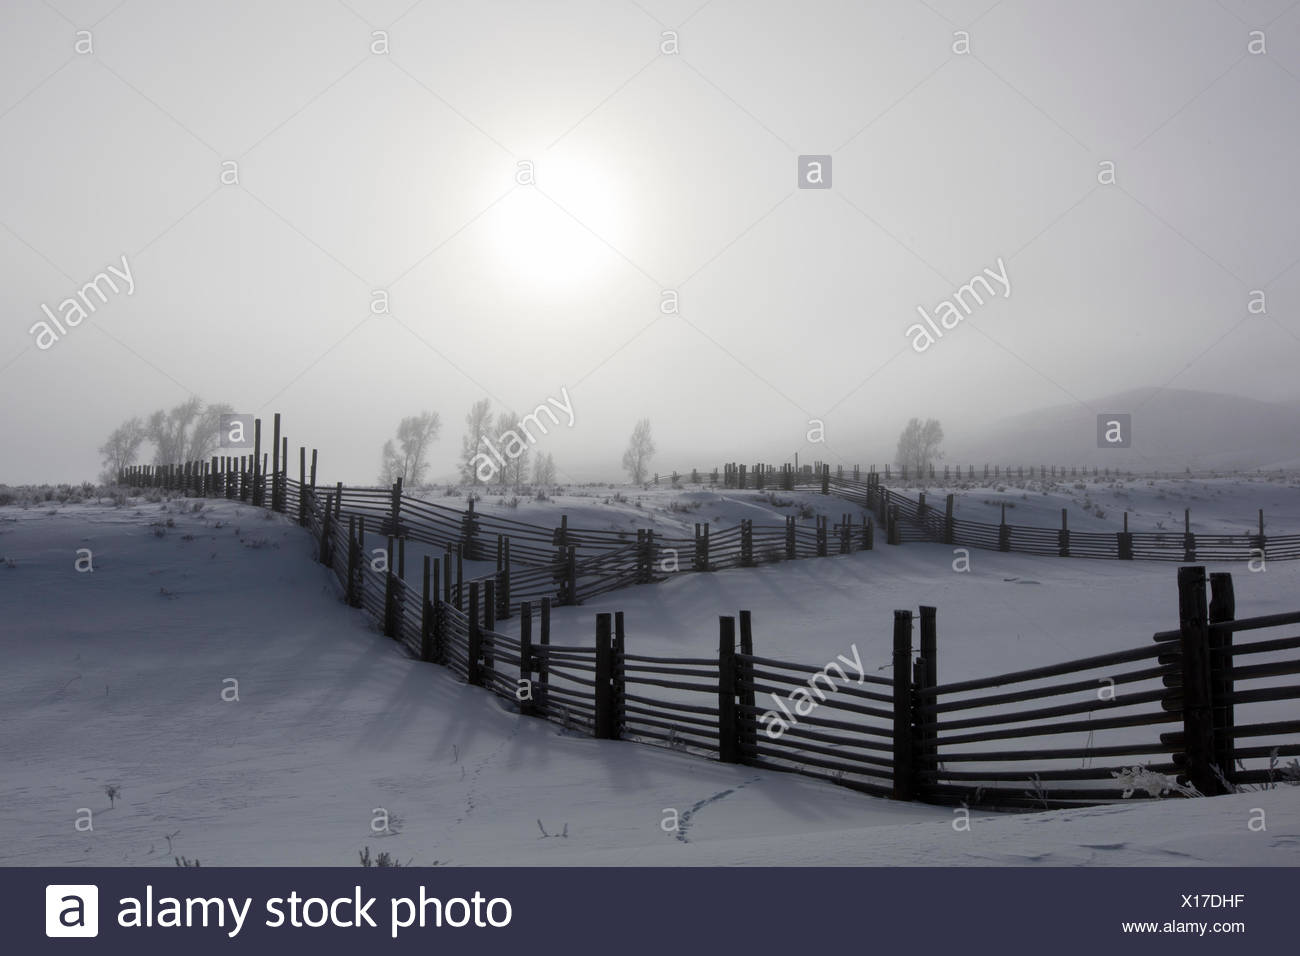 Wooden fences separate snow covered pastureland. Stock Photo